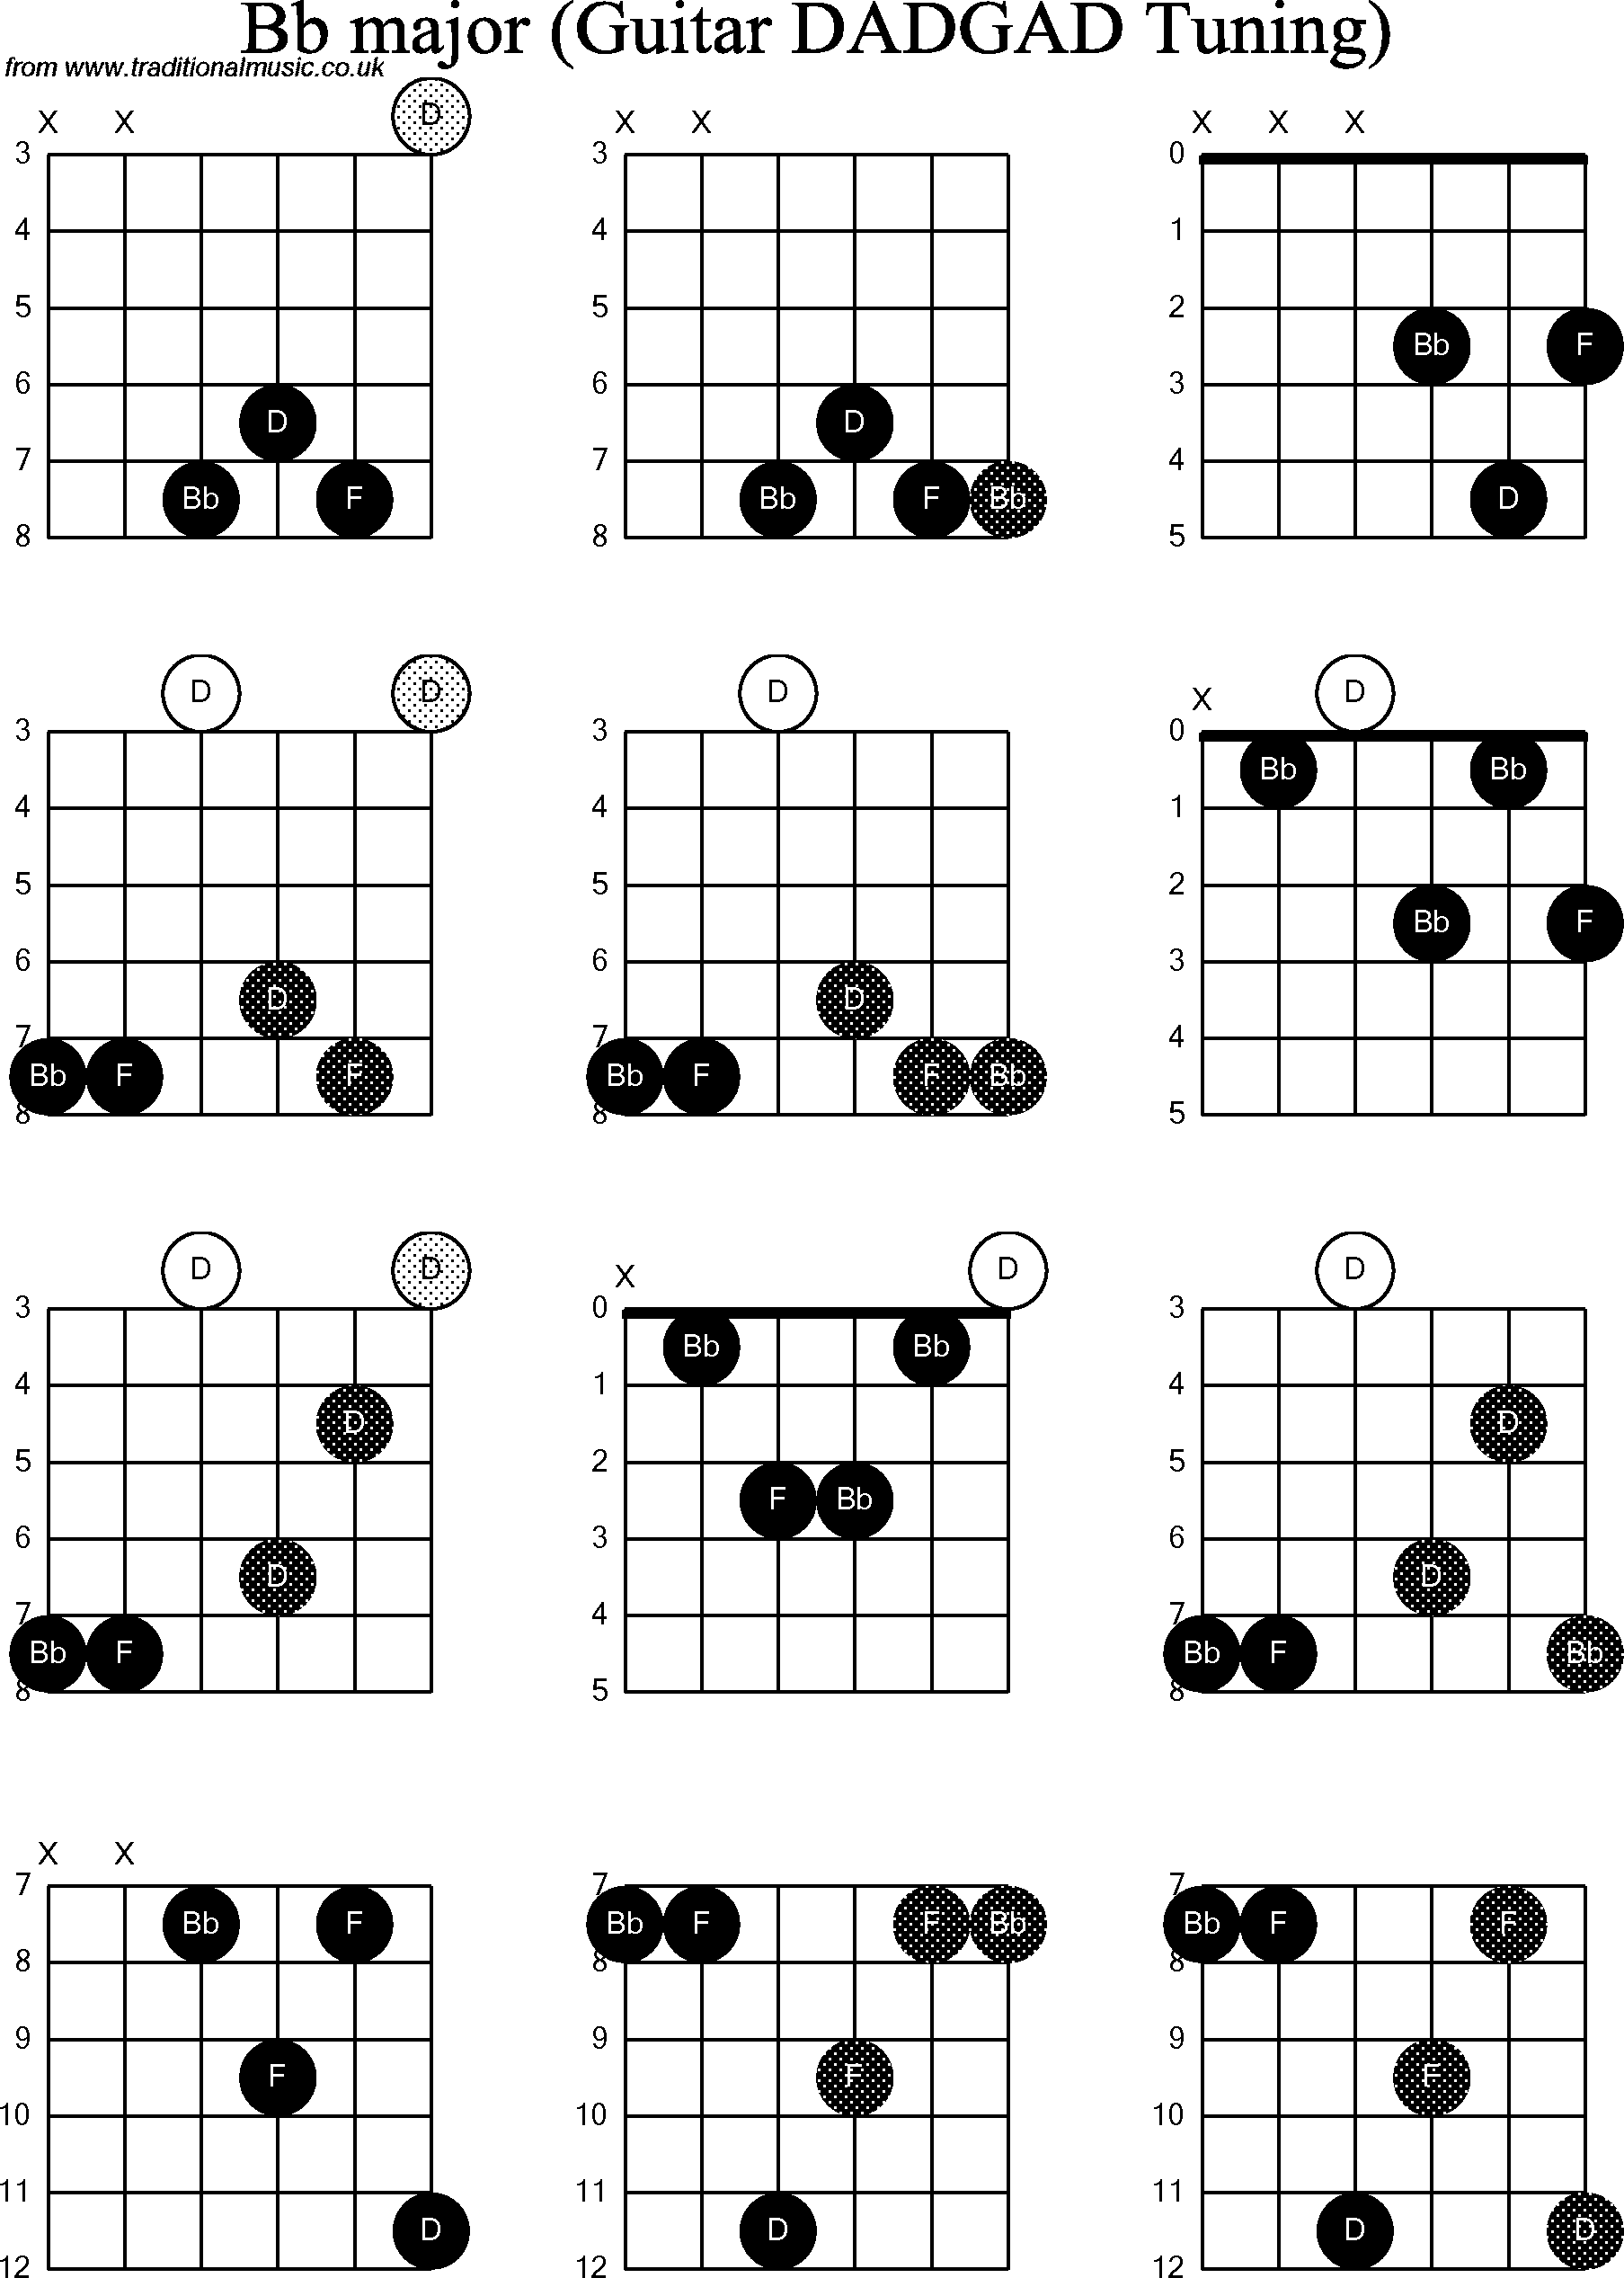 chord diagrams d modal guitar  dadgad   bb